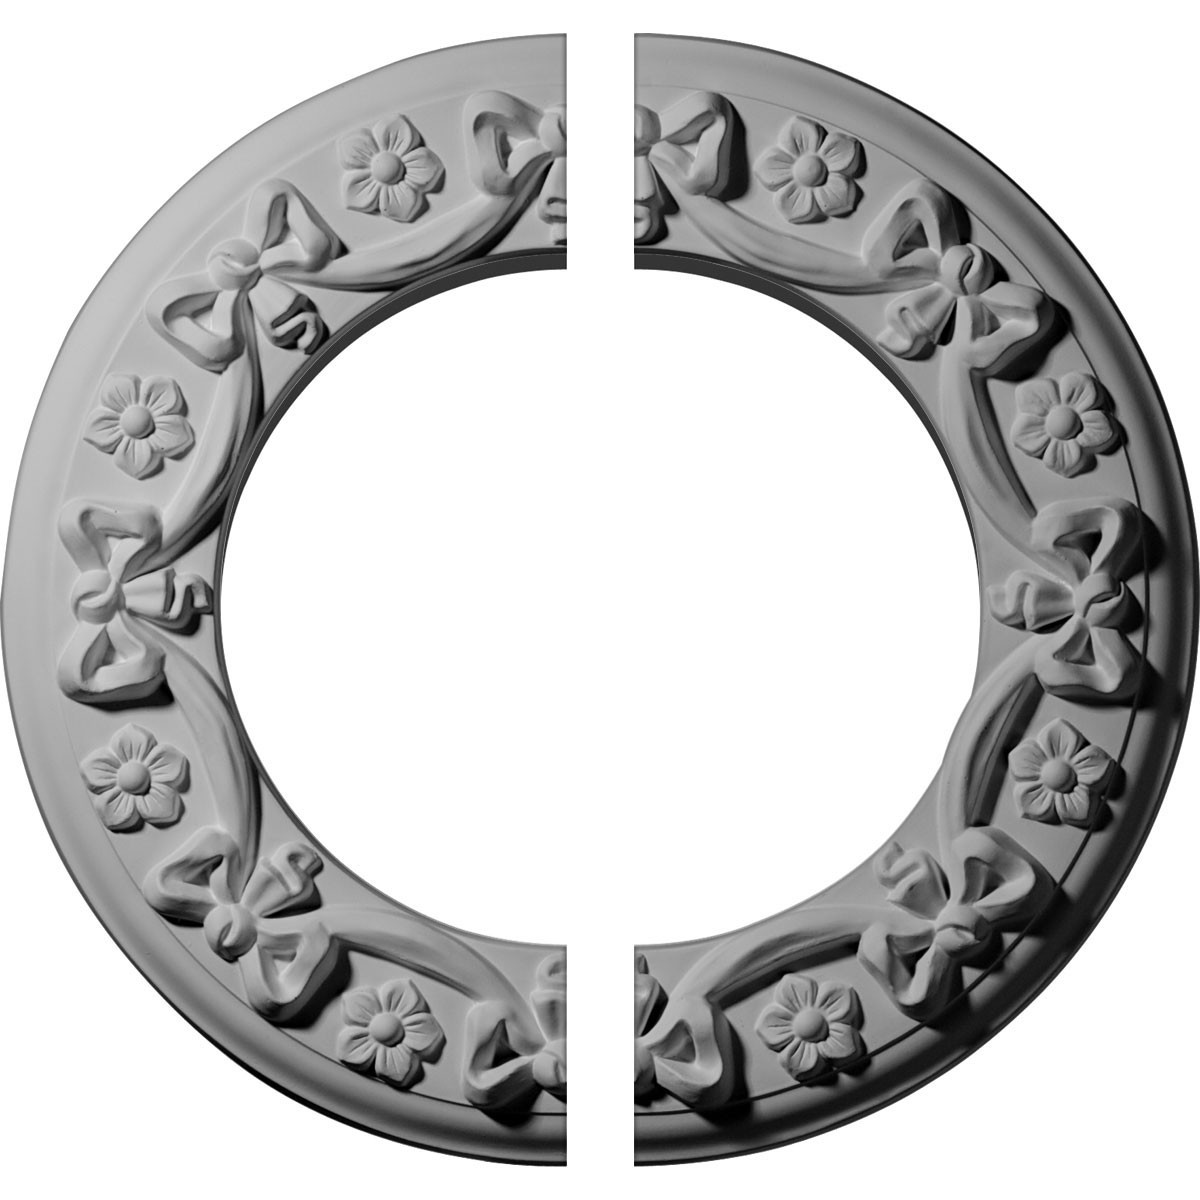 """EM-CM12RI2 - 12 1/4""""OD x 7 1/2""""ID x 7/8""""P Ribbon with Bow Ceiling Medallion, Two Piece (Fits Canopies up to 7 1/2"""")"""